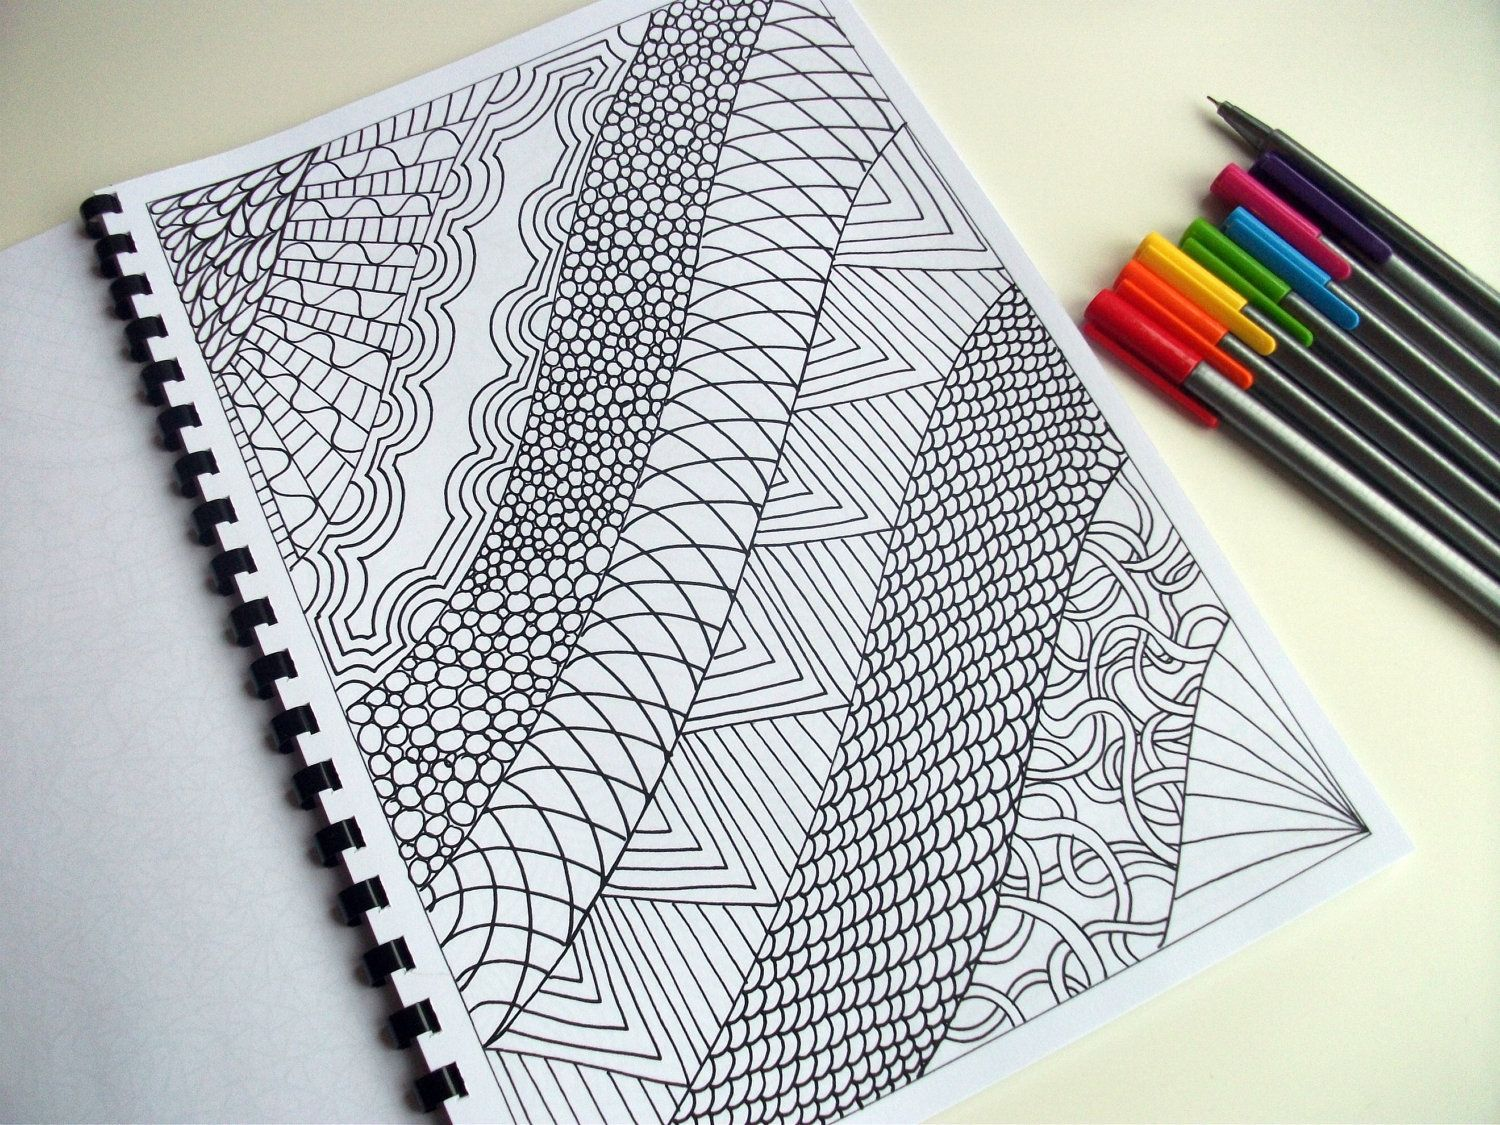 Printable Coloring Page, Zentangle Inspired, Abstract Art ...